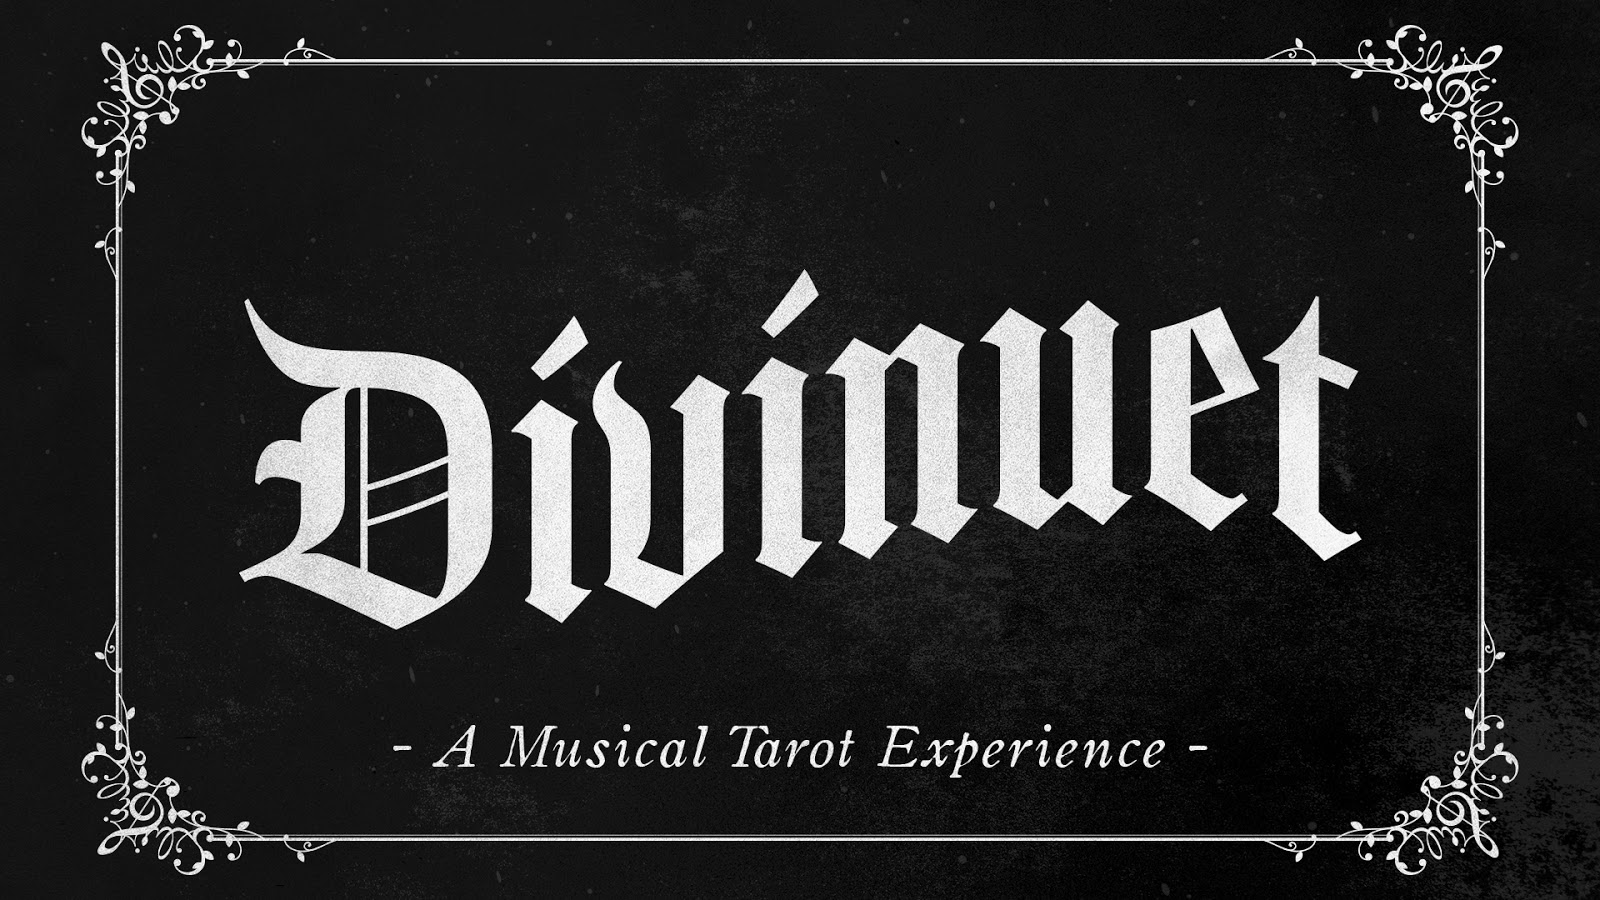 """""""Divinuet"""" written in large white letters across a black intertitle. Underneath, in subscript, reads """"a musical tarot experience""""."""